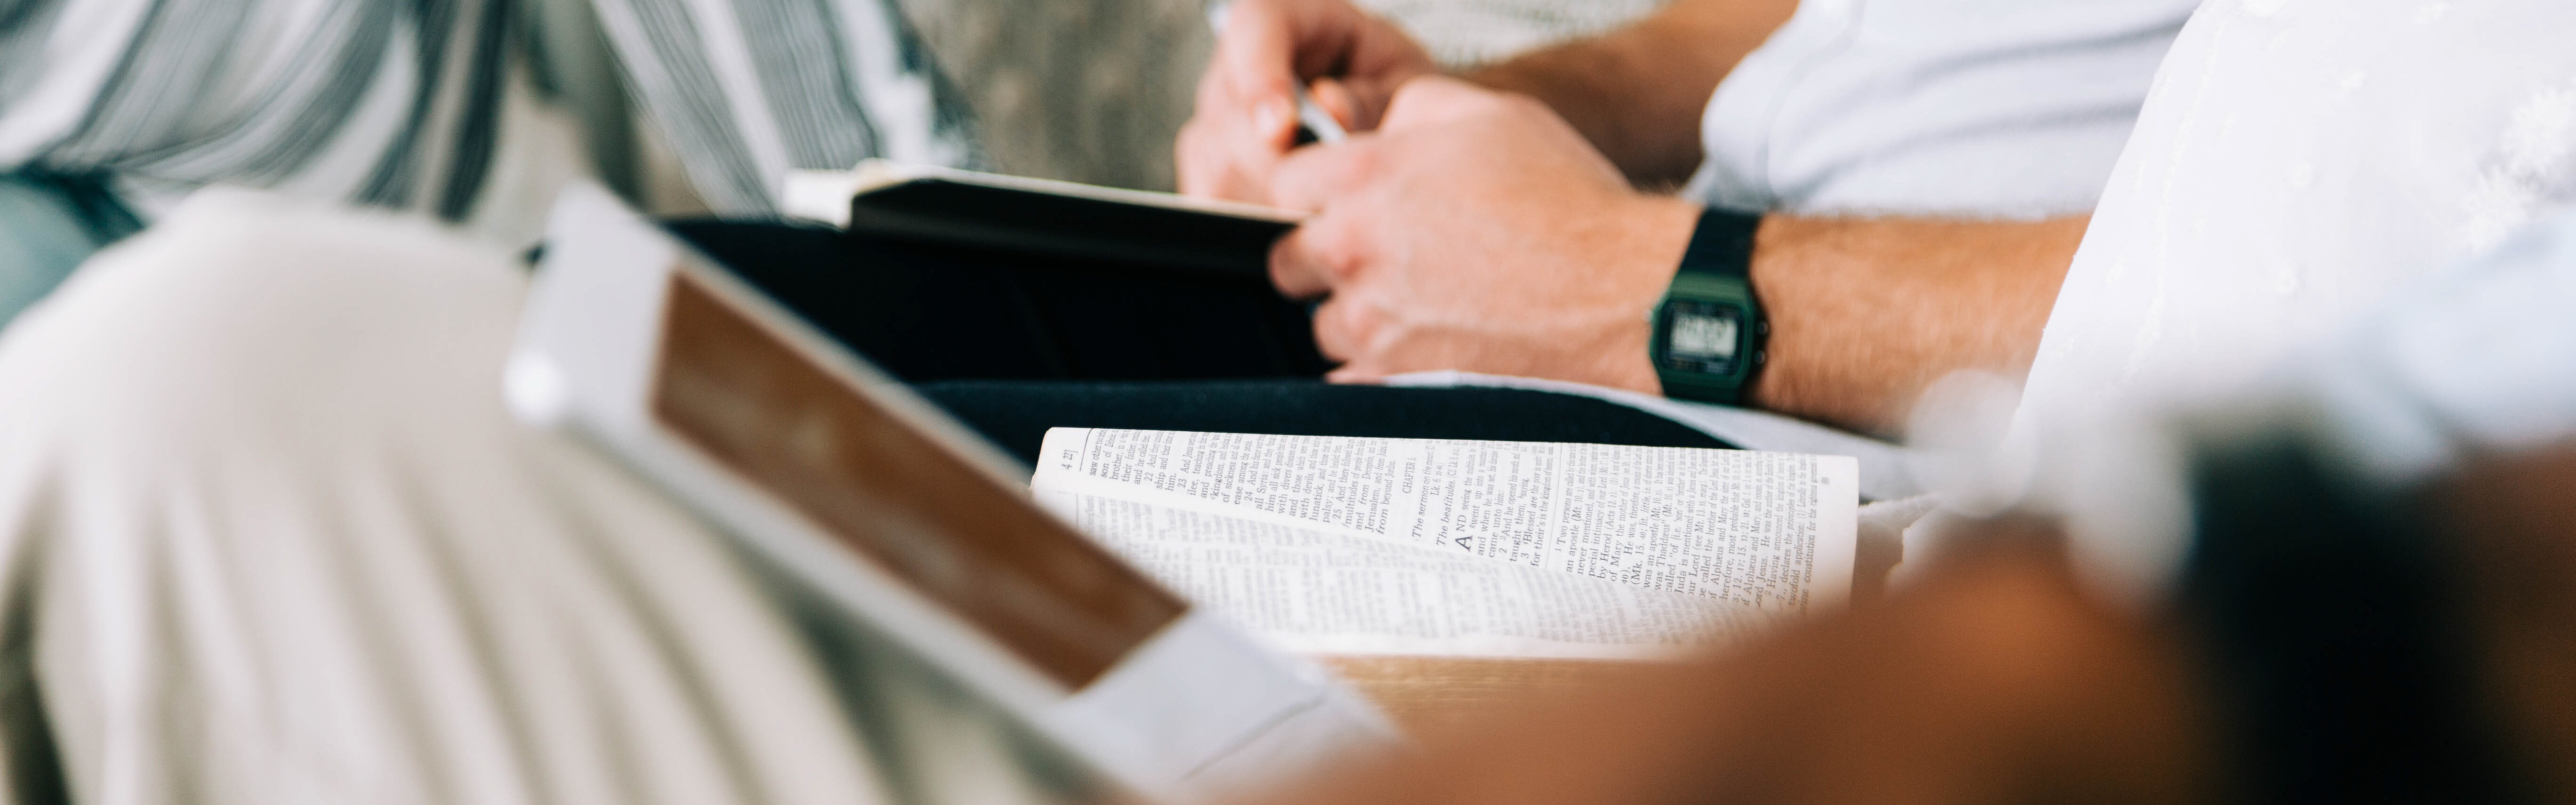 Read the New Testament: Week of March 22, 2021